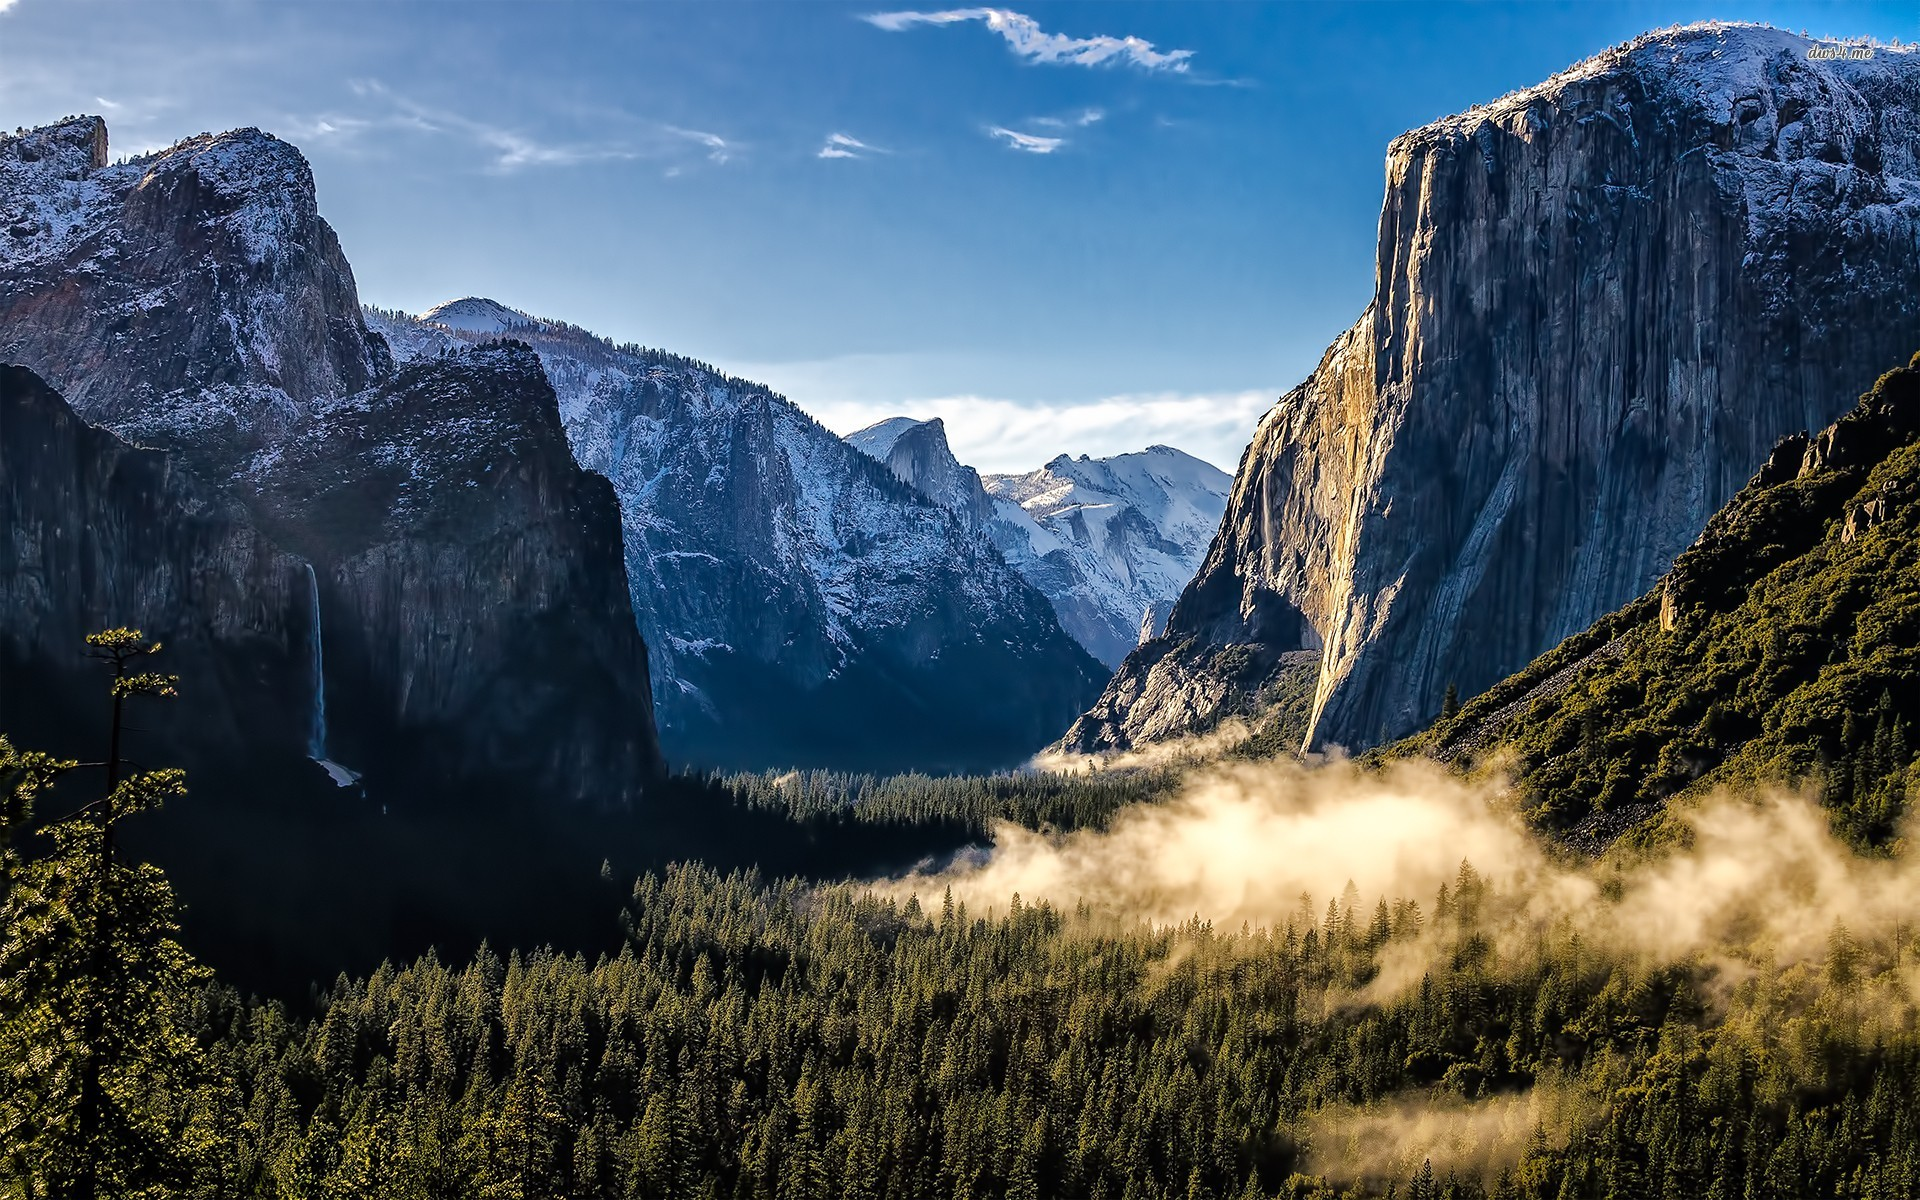 Yosemite wallpapers hd pixelstalk net - Mac os x wallpaper 1920x1080 ...